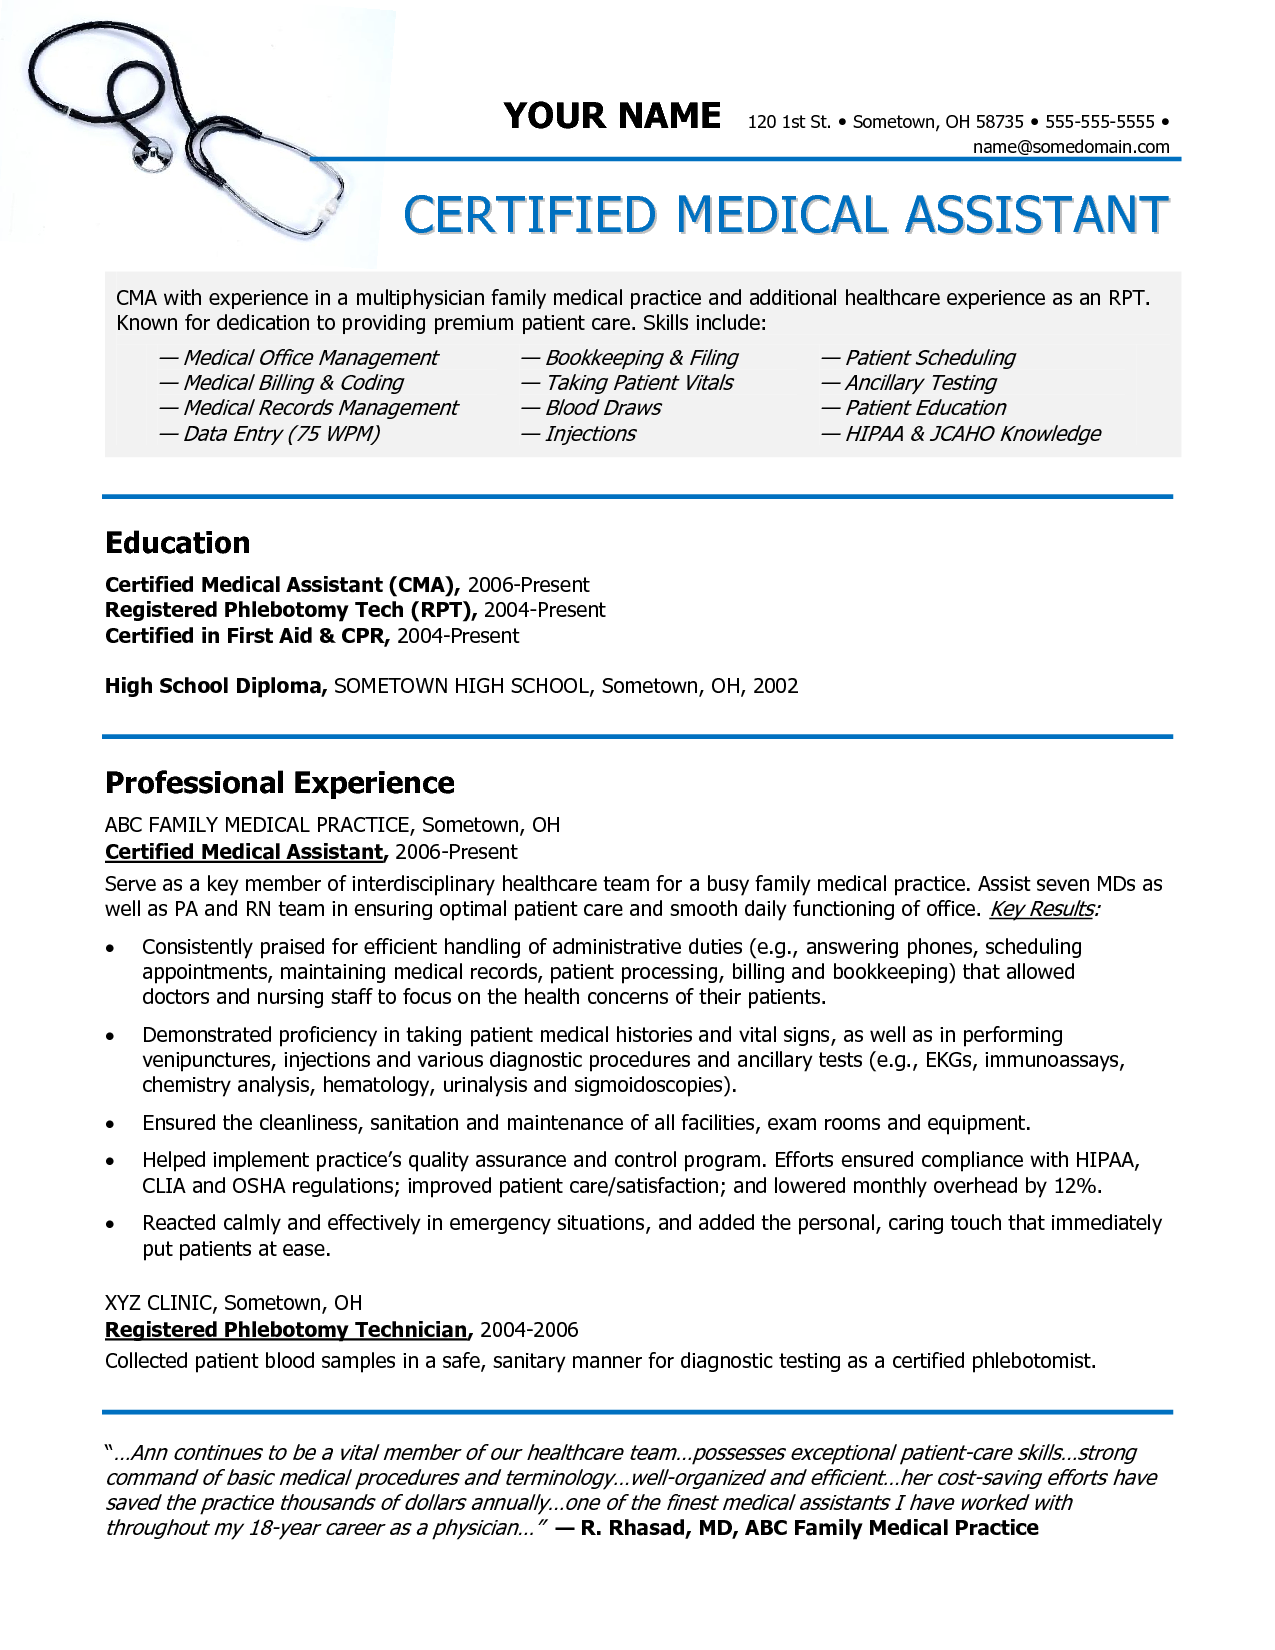 Healthcare Resume Objective Examples Best Of Medical Assistant Entry Level 24